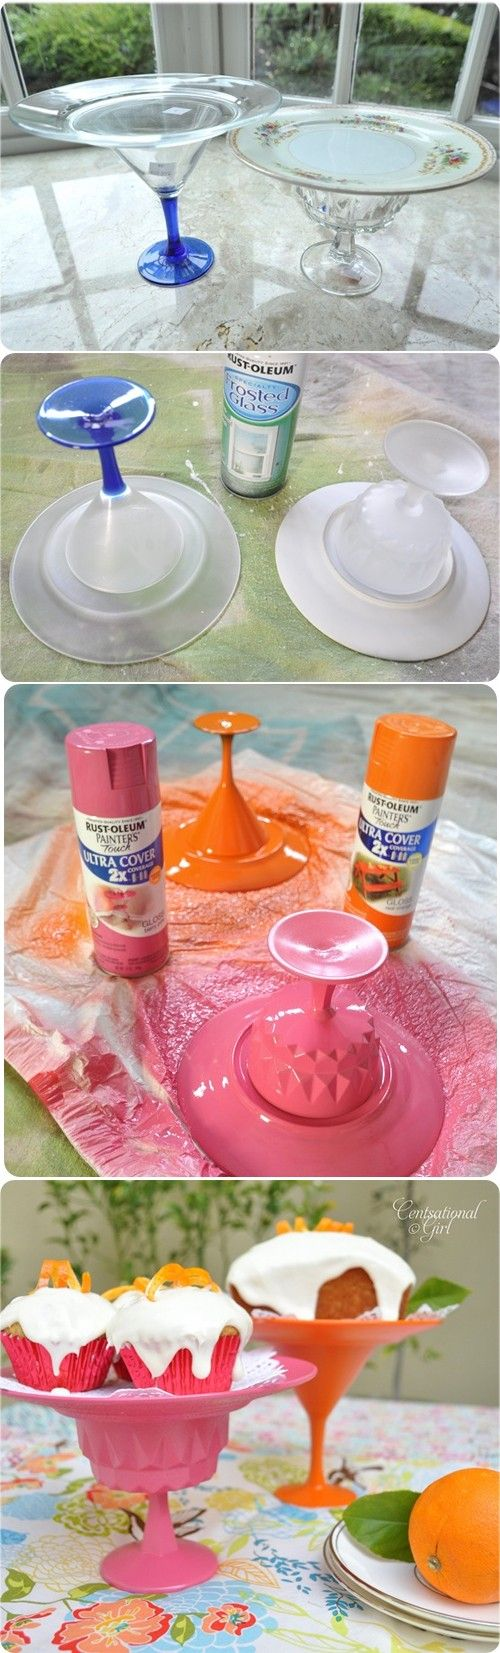 Cake Stands: